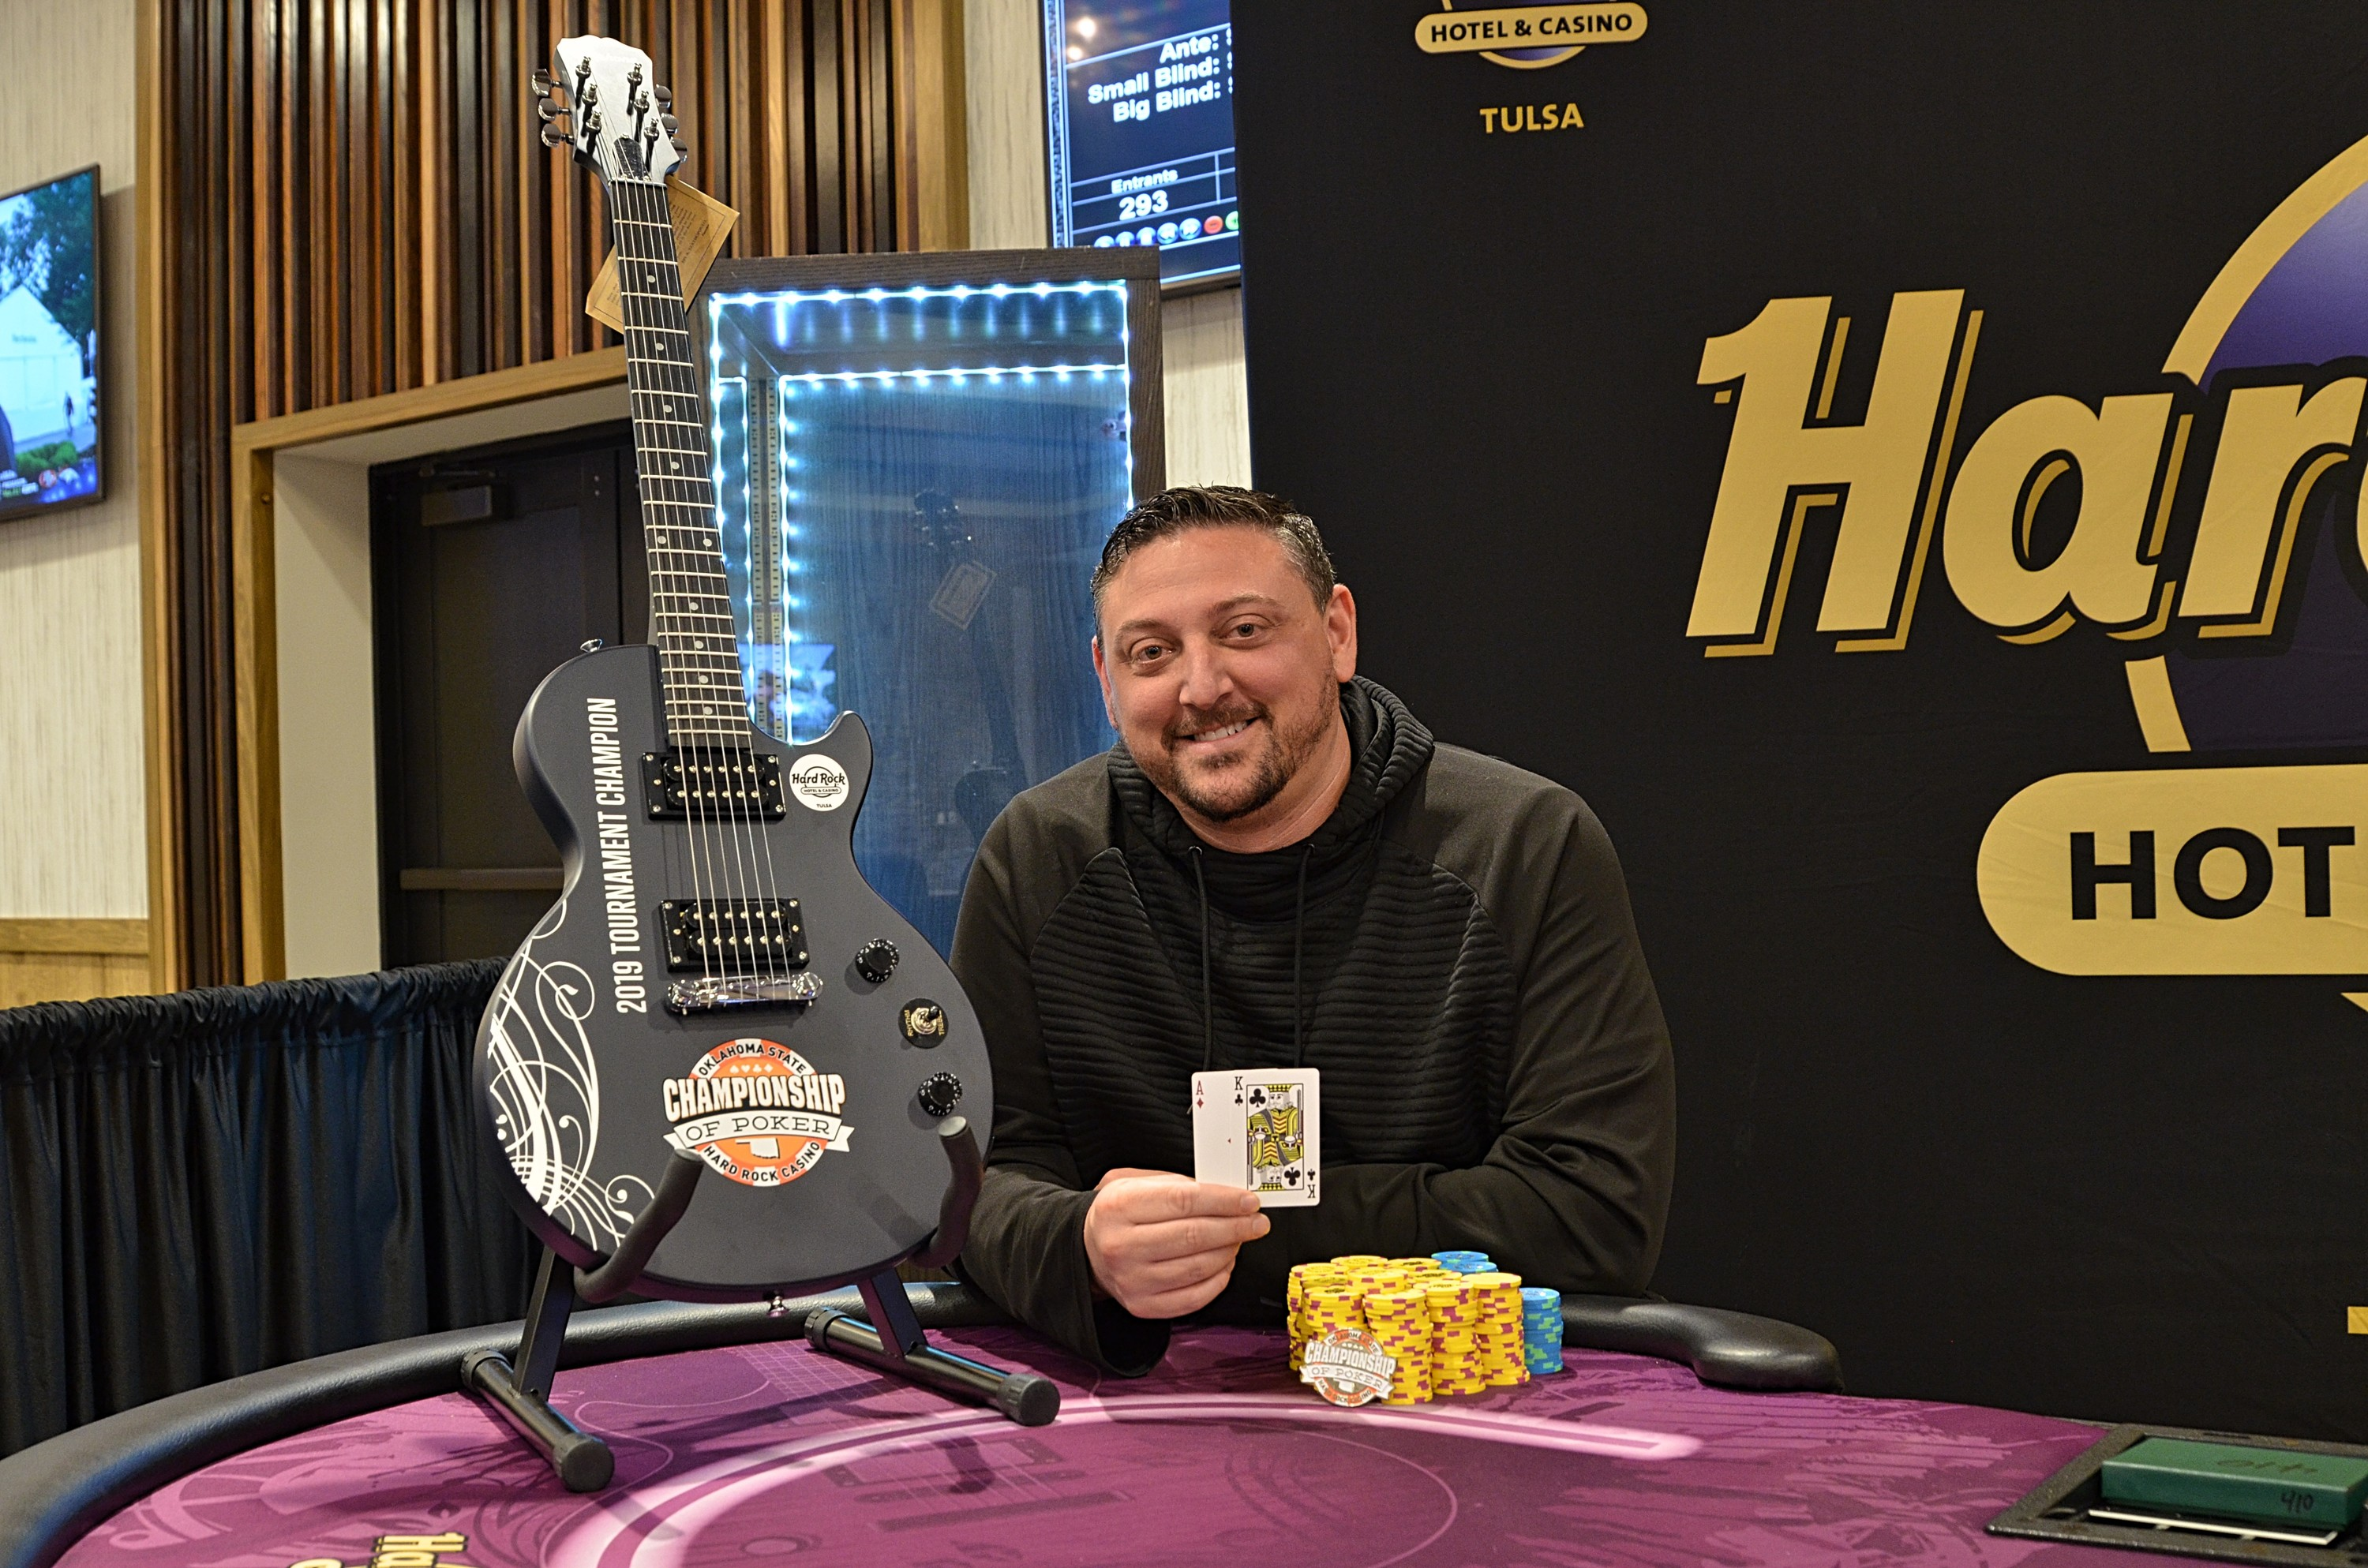 Simon Webster Wins 15th Annual Oklahoma State Poker